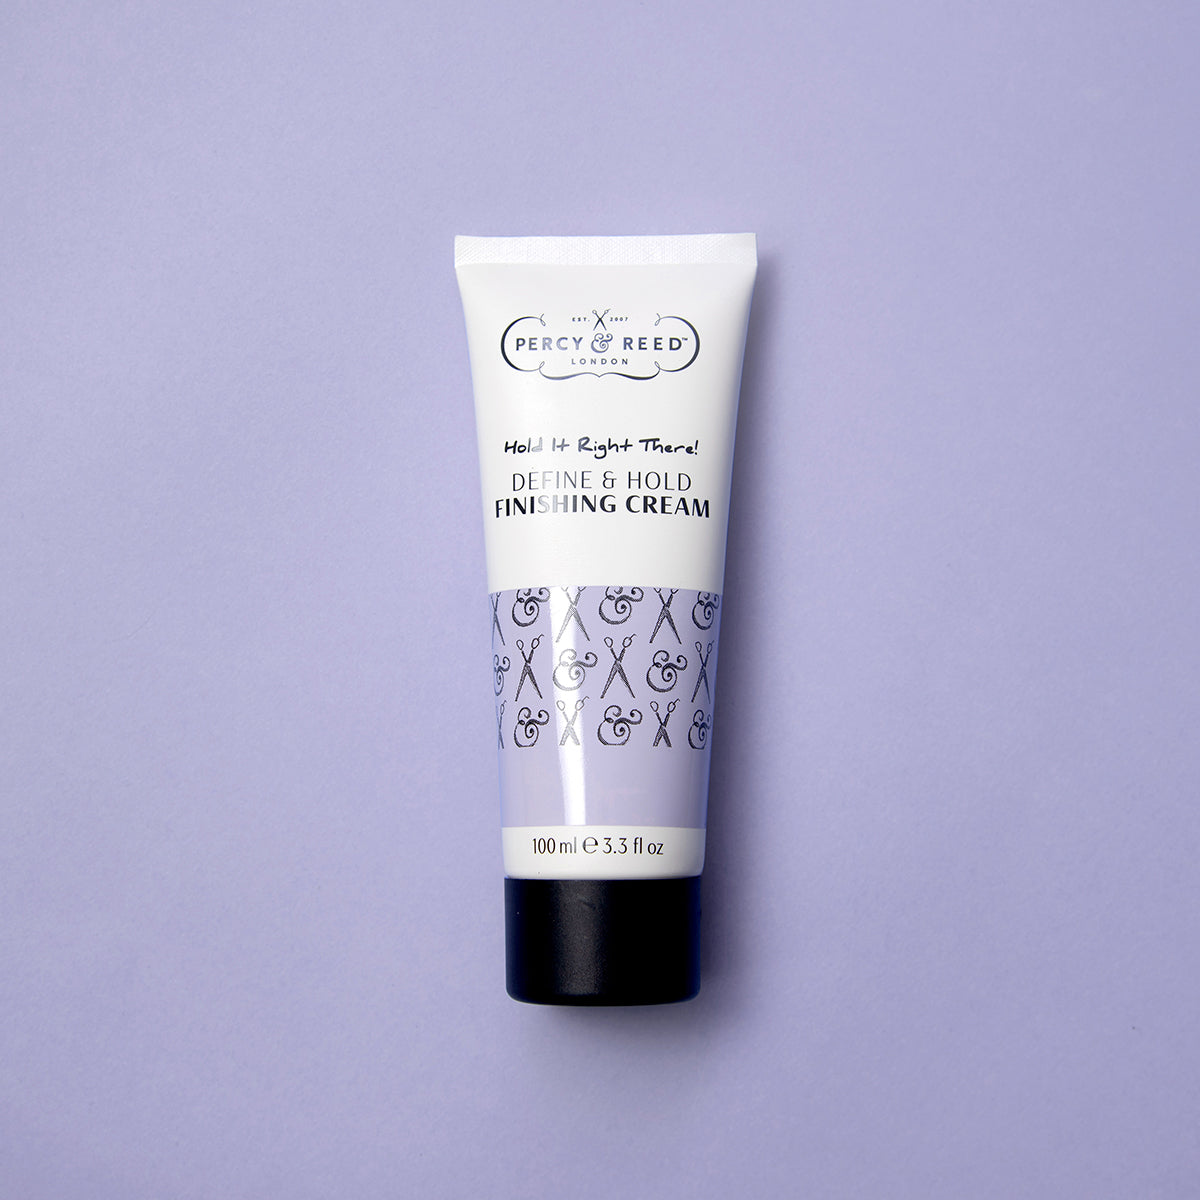 Percy & Reed Hold It Right There! Define & Hold Finishing Cream